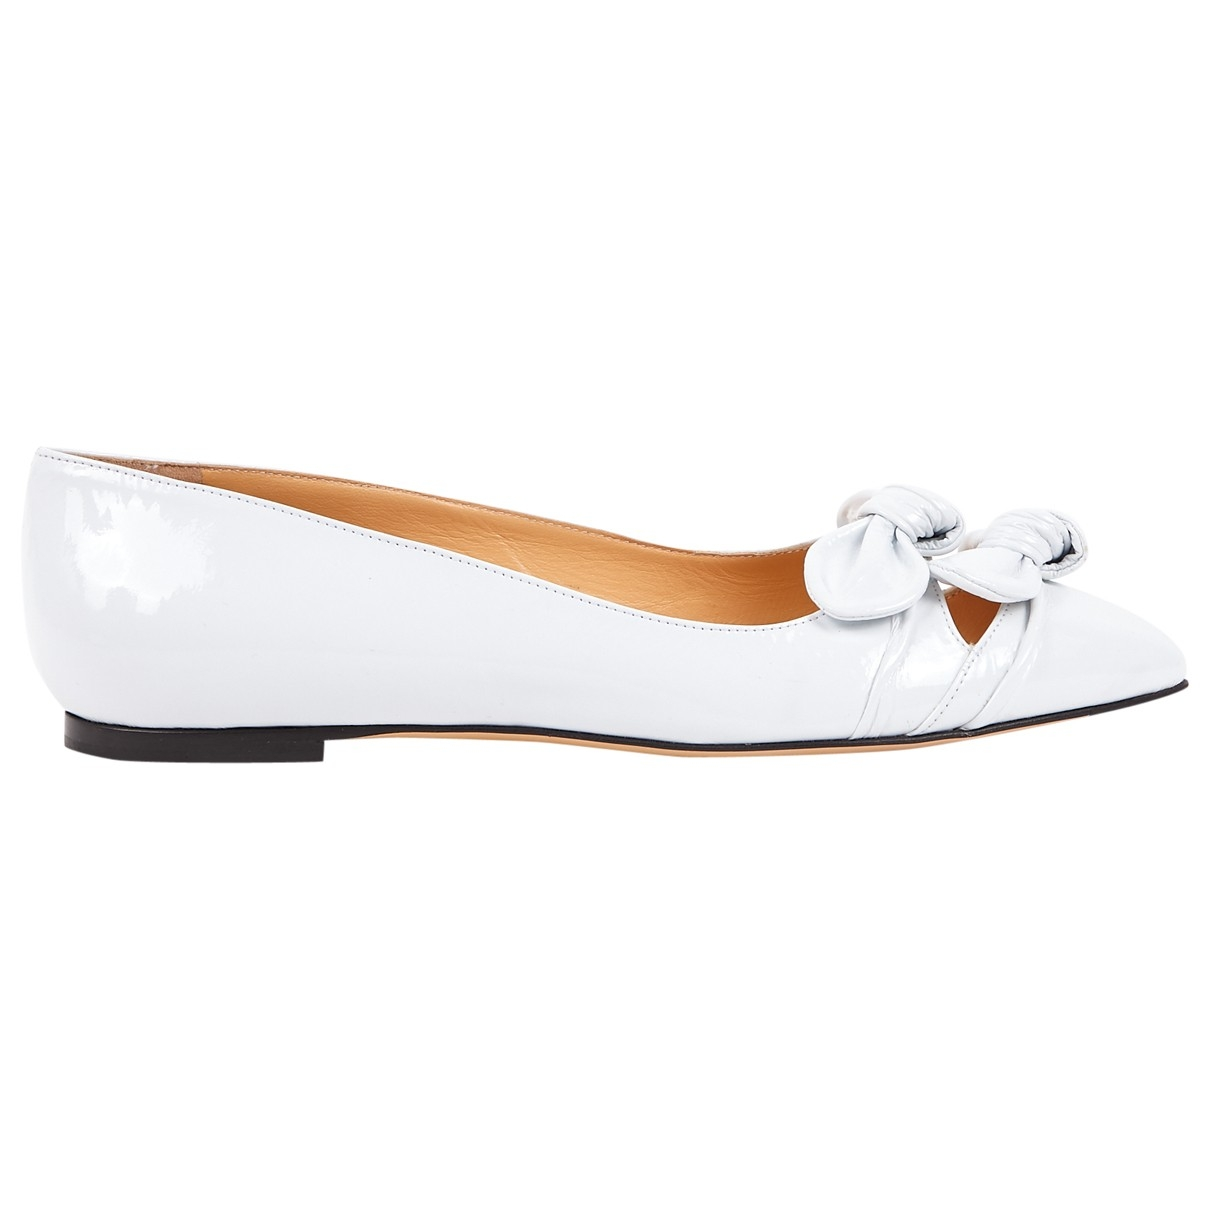 Charlotte Olympia \N White Patent leather Ballet flats for Women 39 EU